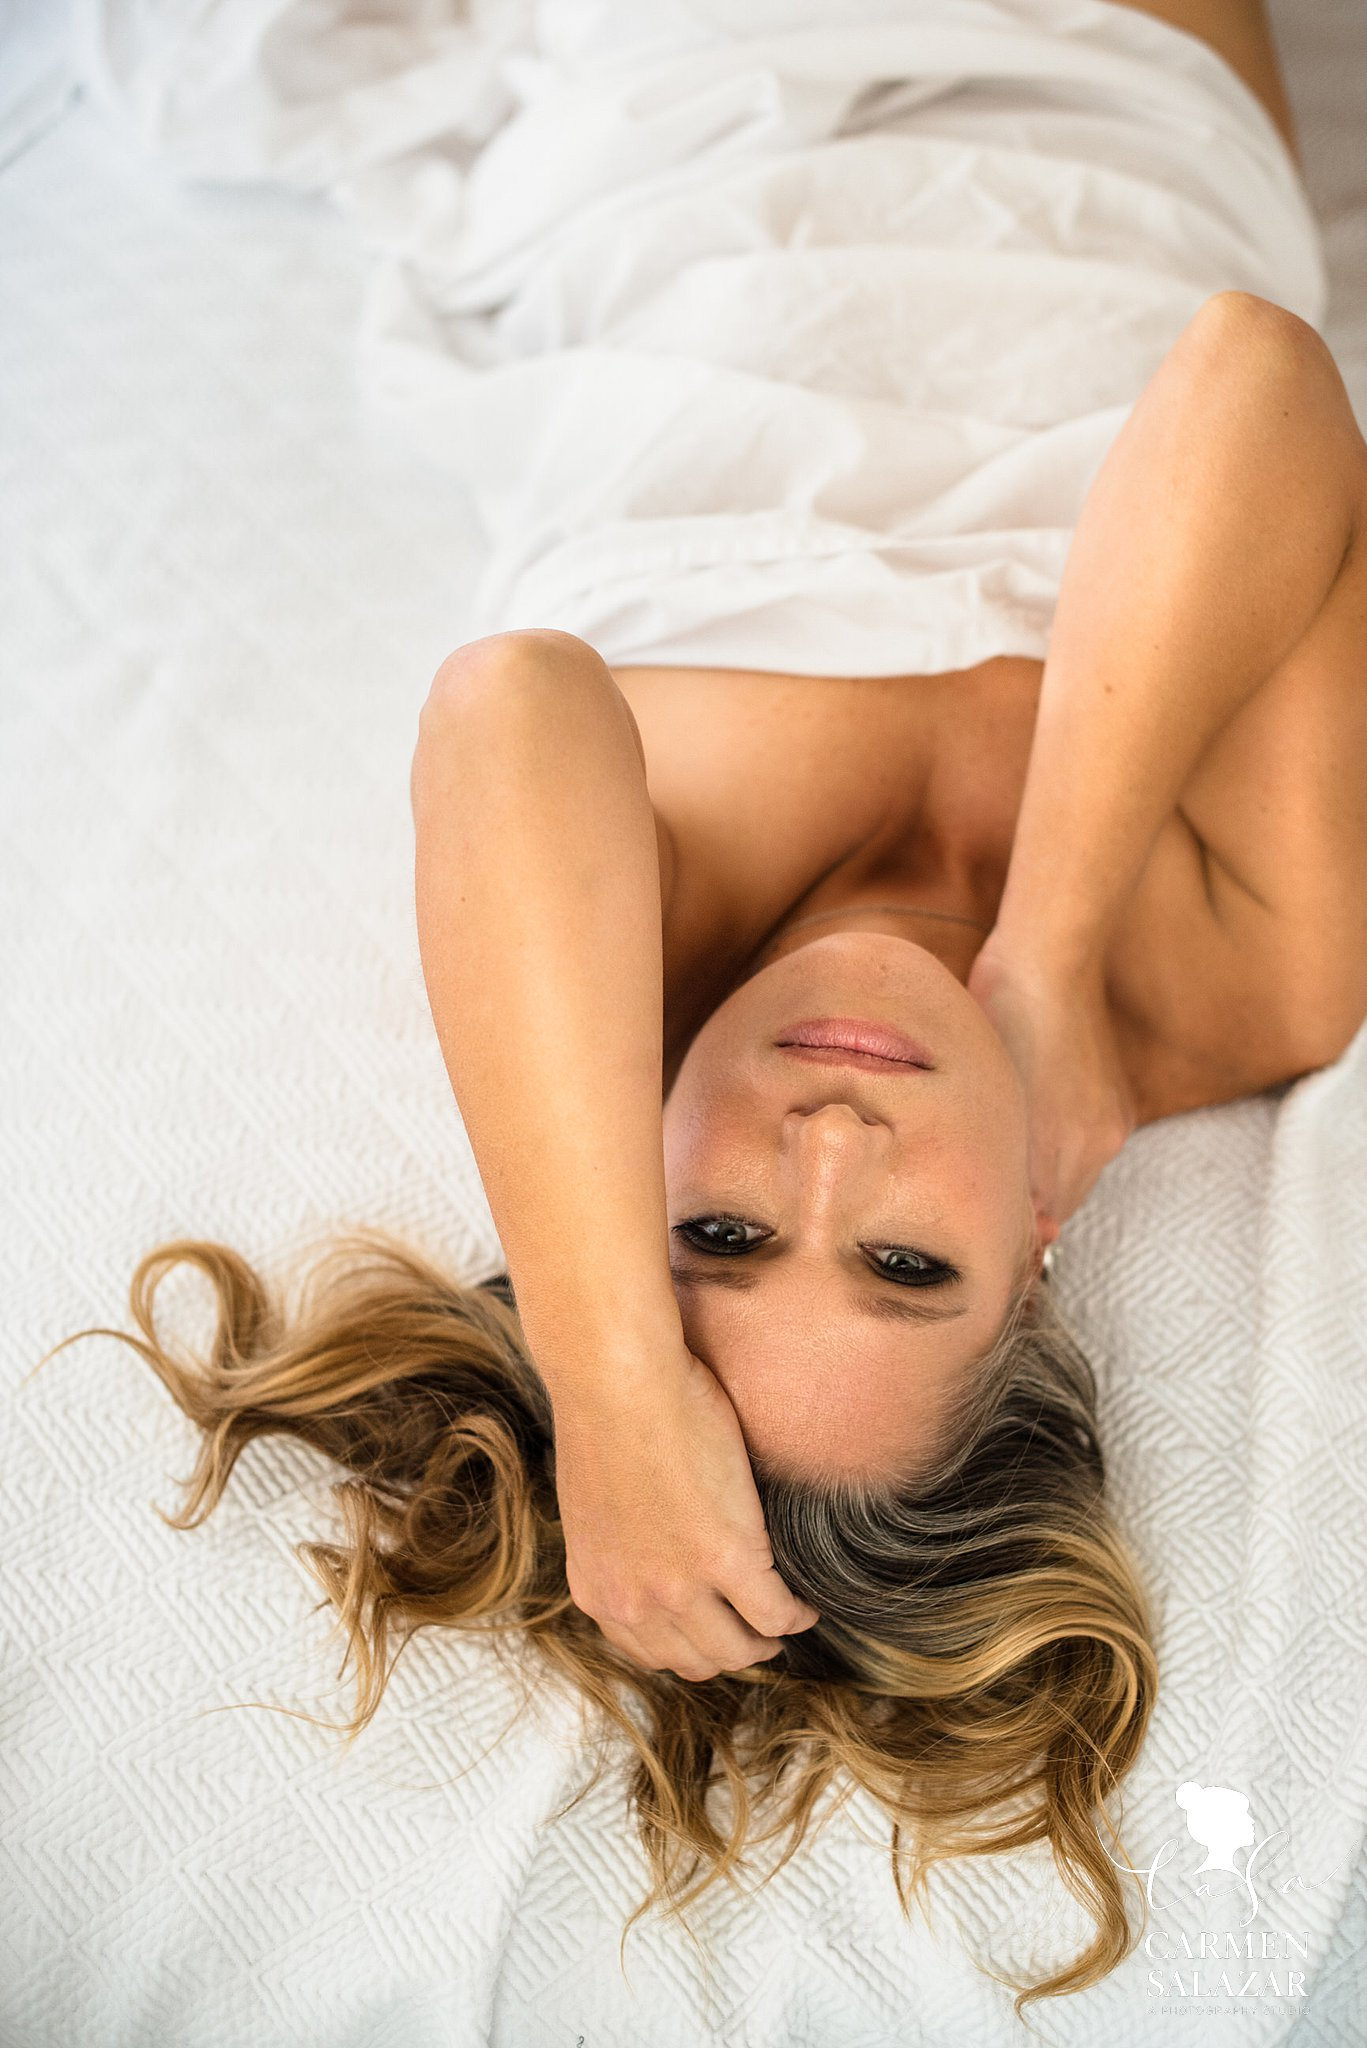 Beautiful natural light boudoir photo of a woman on a white sheet